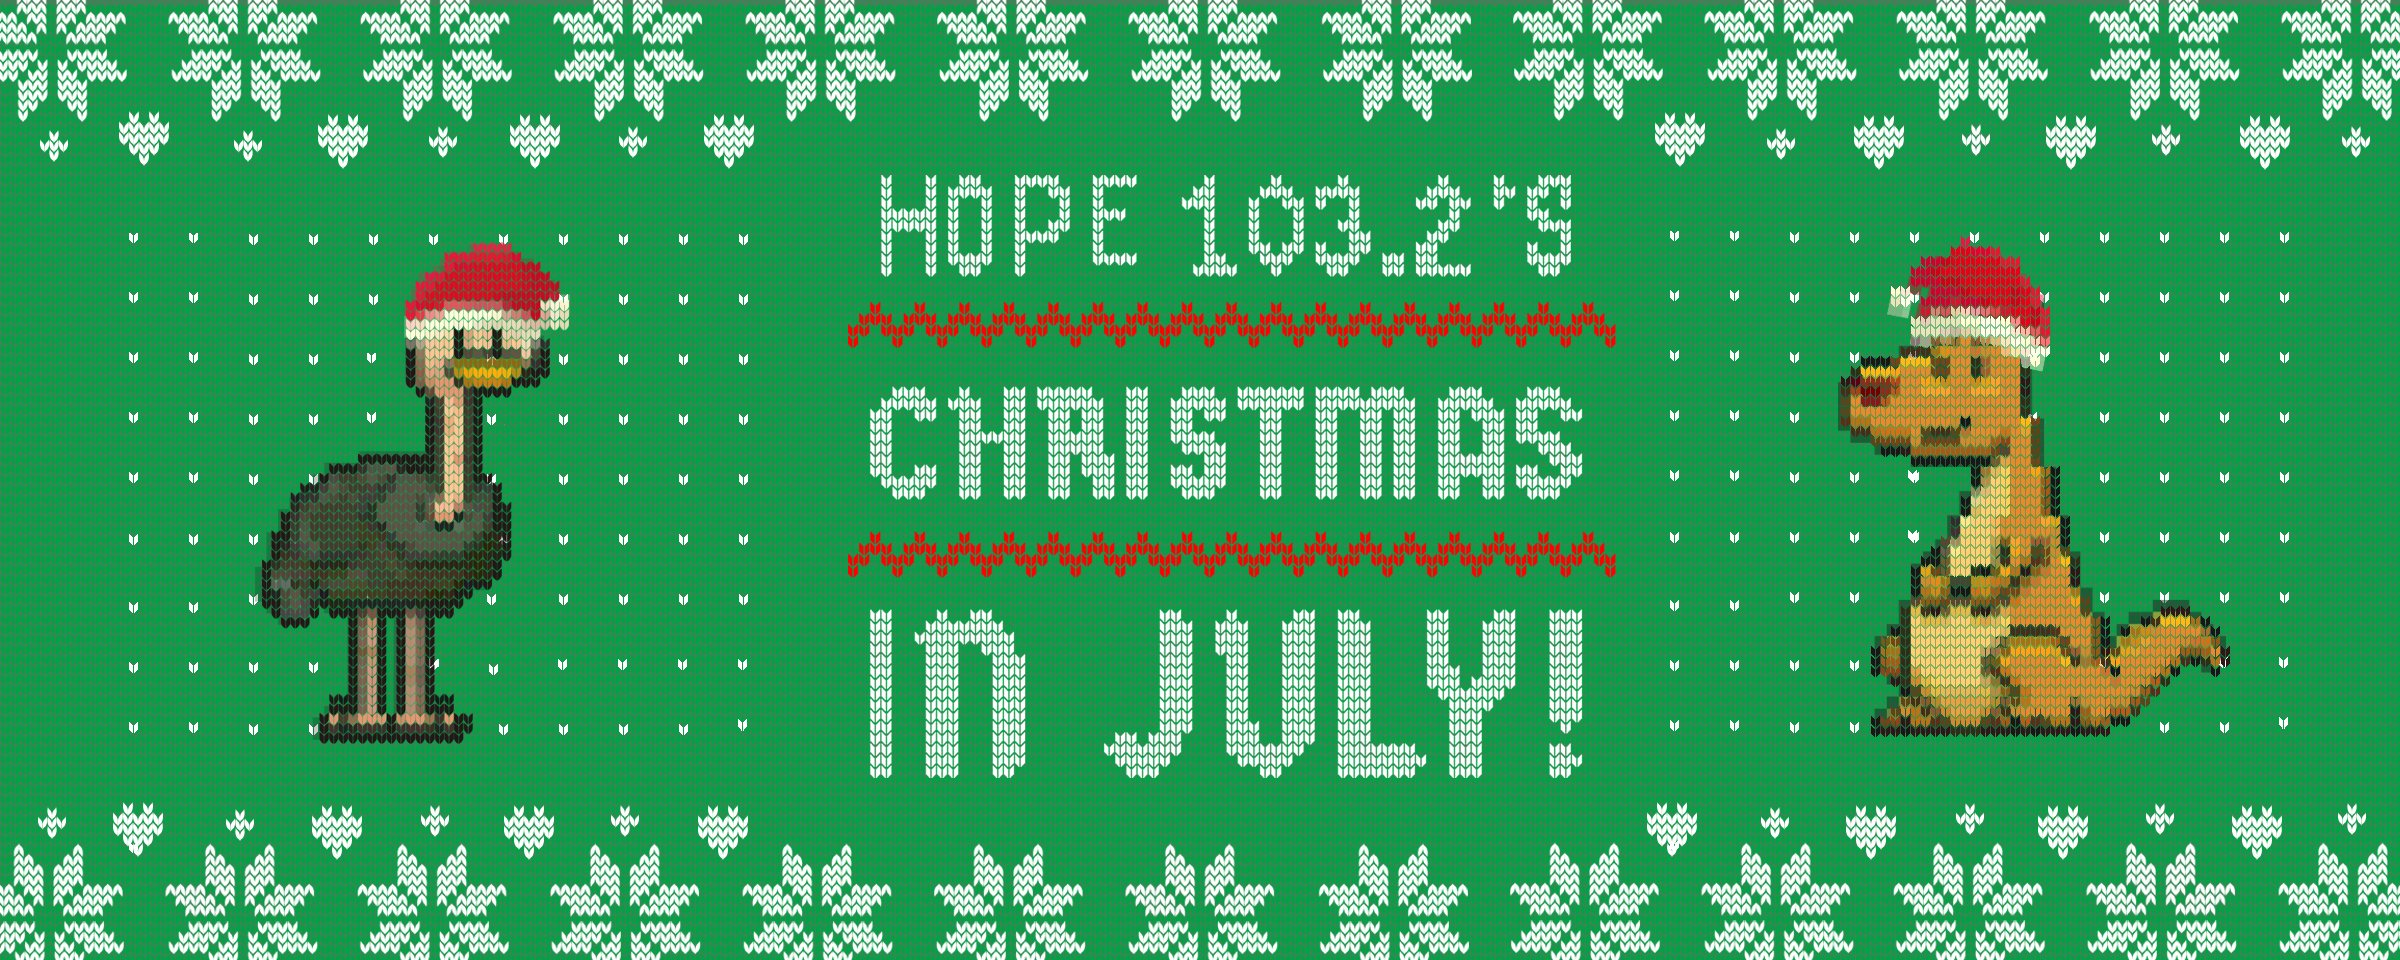 s Christmas In July 2020 Hope 103.2's Christmas in July – Hope 103.2